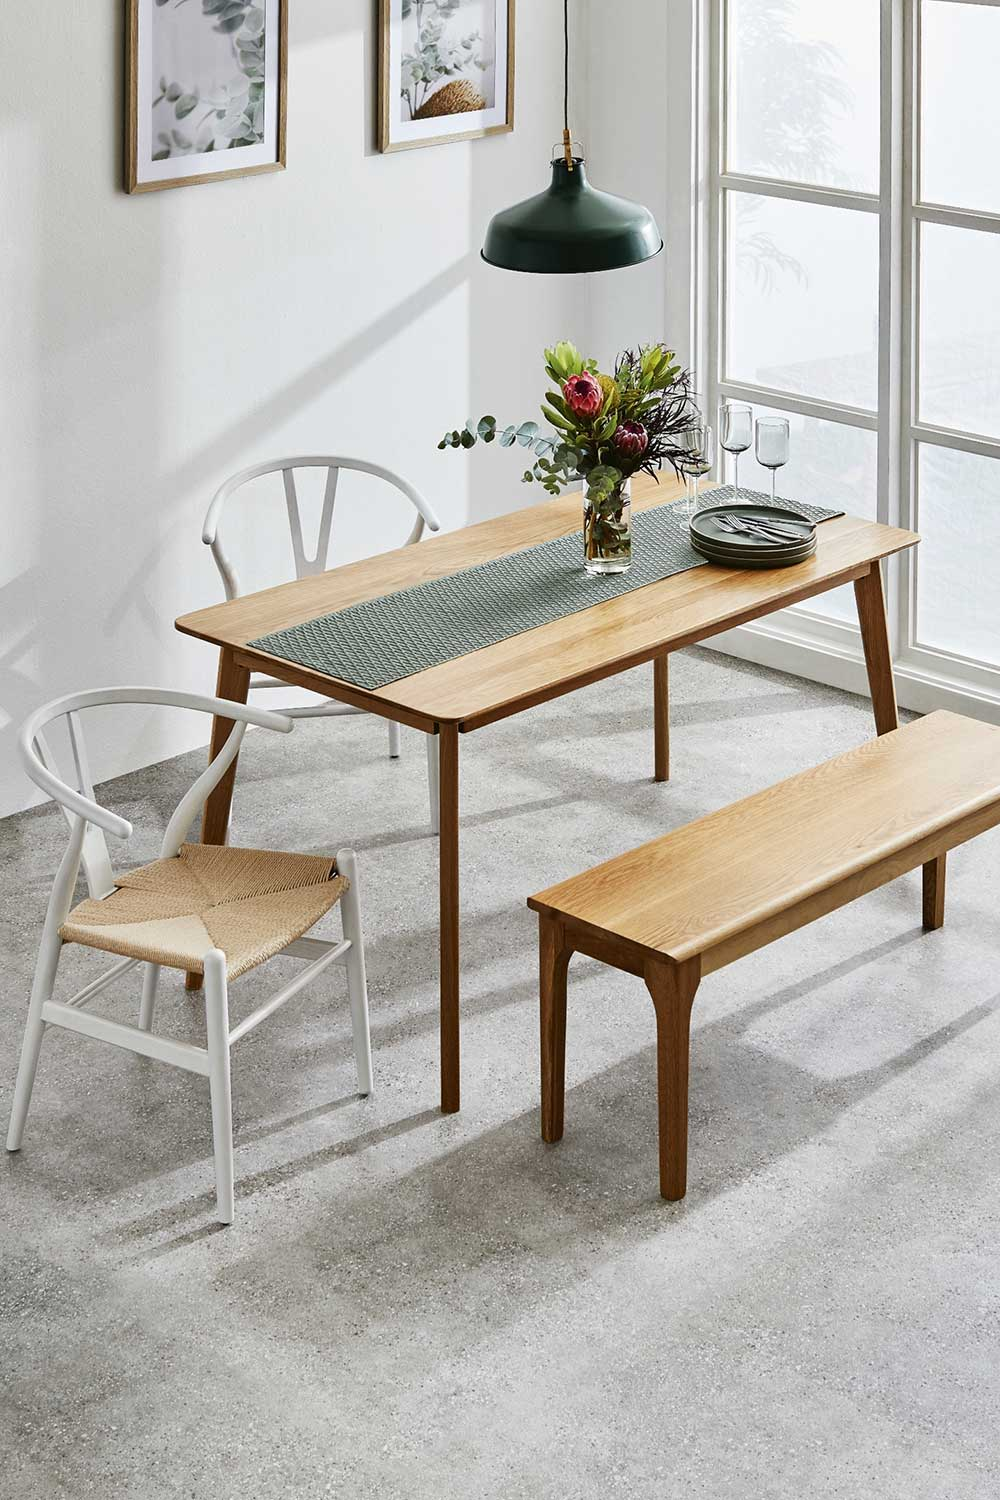 How To Refurnish Your Whole Home With Luxe Scandi Furniture For Less Than 400 Per Room Better Homes And Gardens